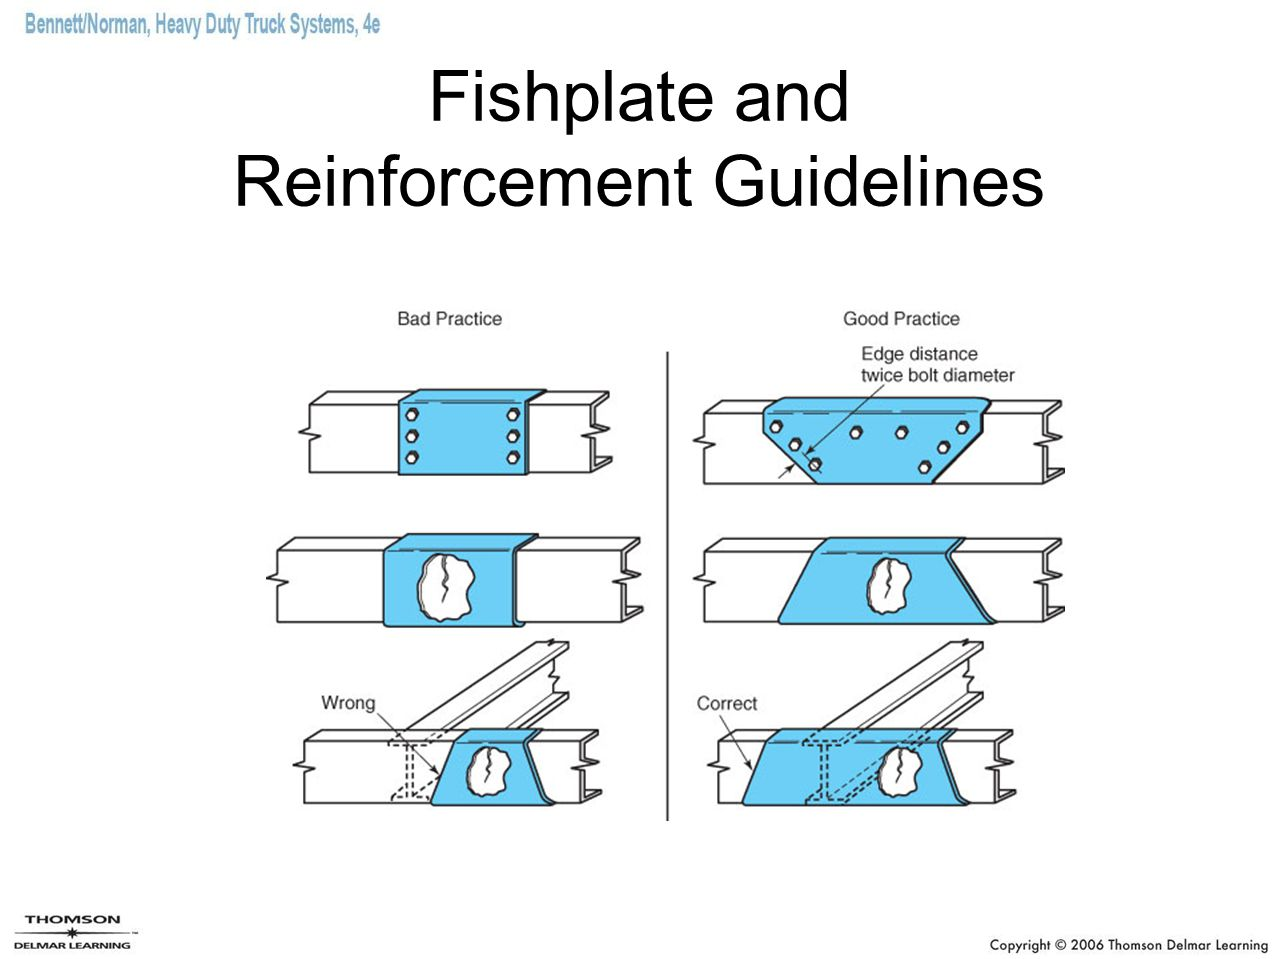 Fishplate and Reinforcement Guidelines